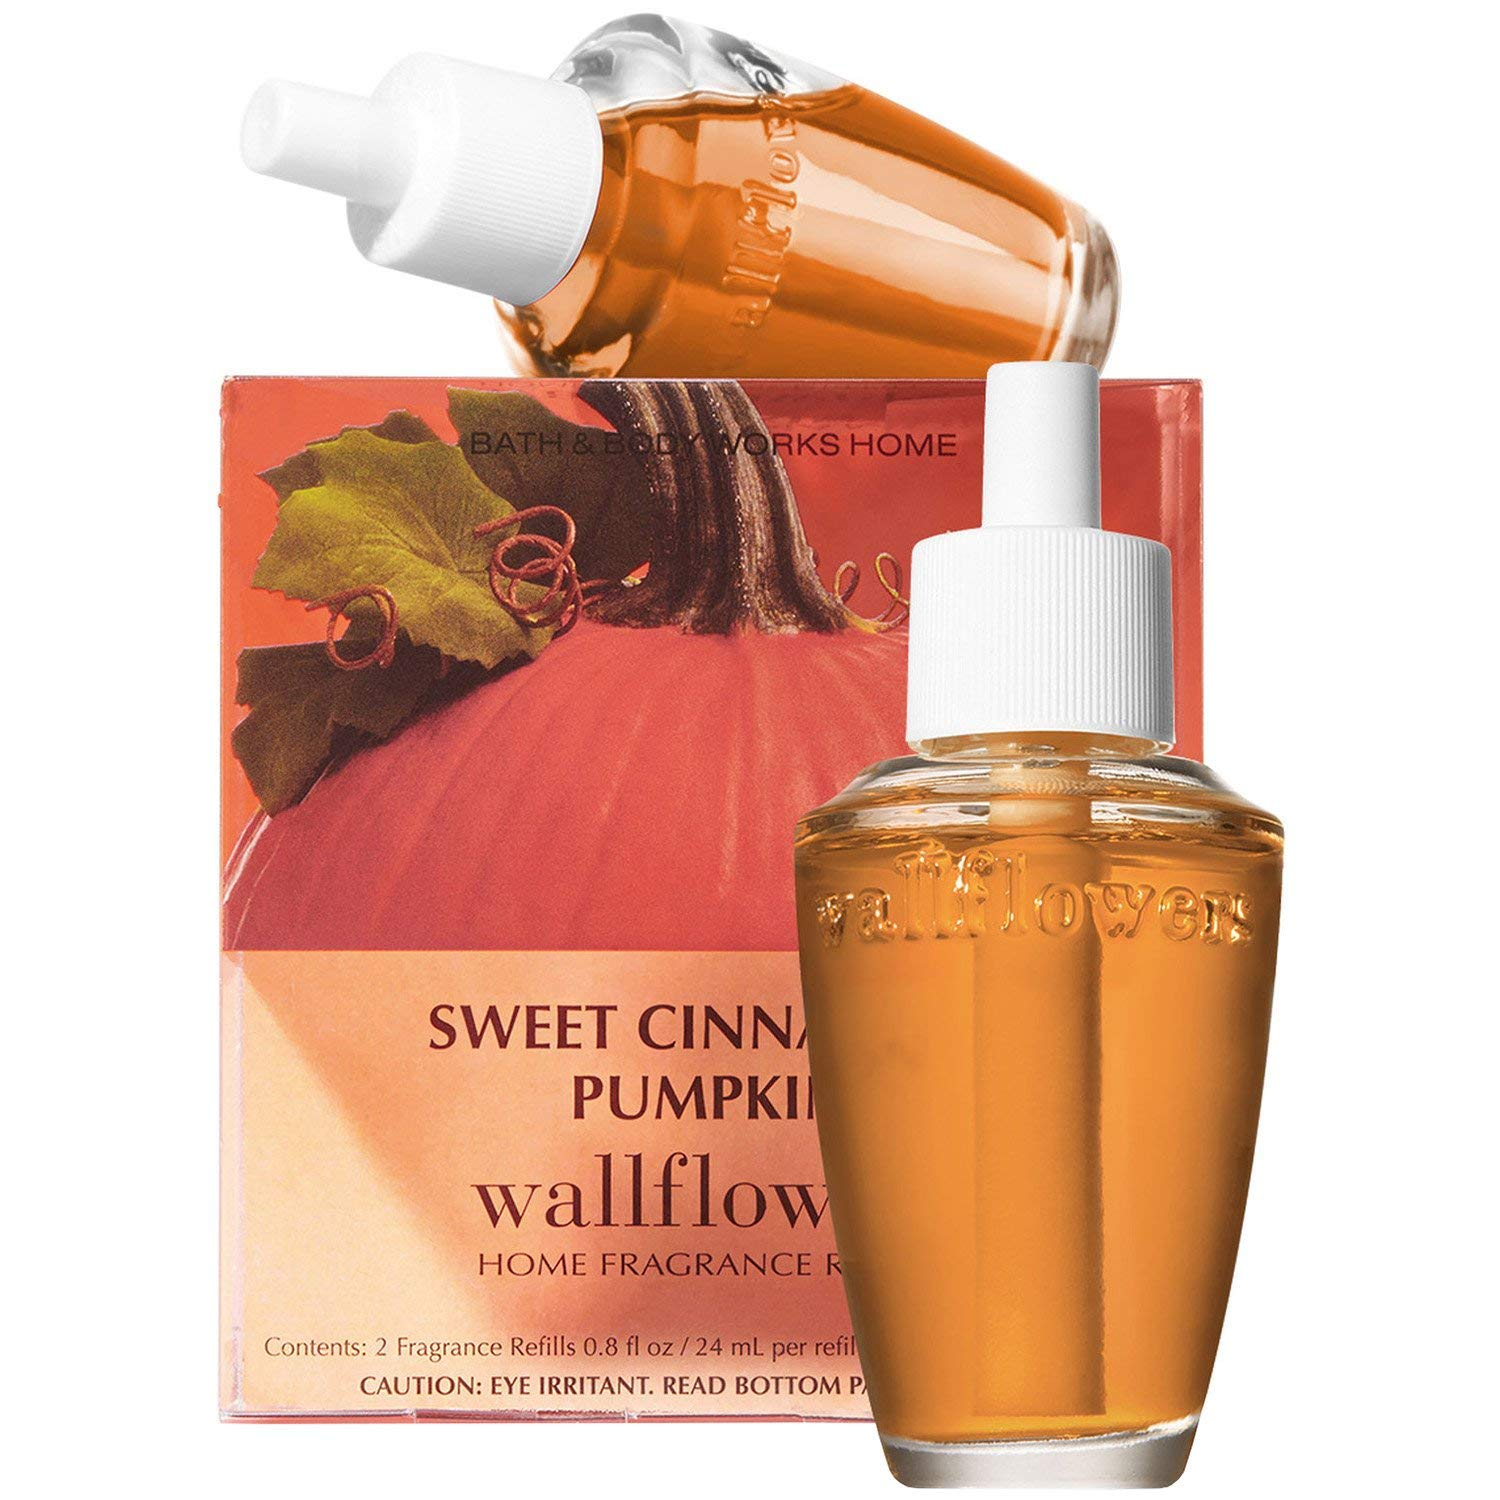 Bath & Body Works Sweet Cinnamon Pumpkin Wallflowers Home Fragrance Refills, 2-Pack (1.6 fl oz total)